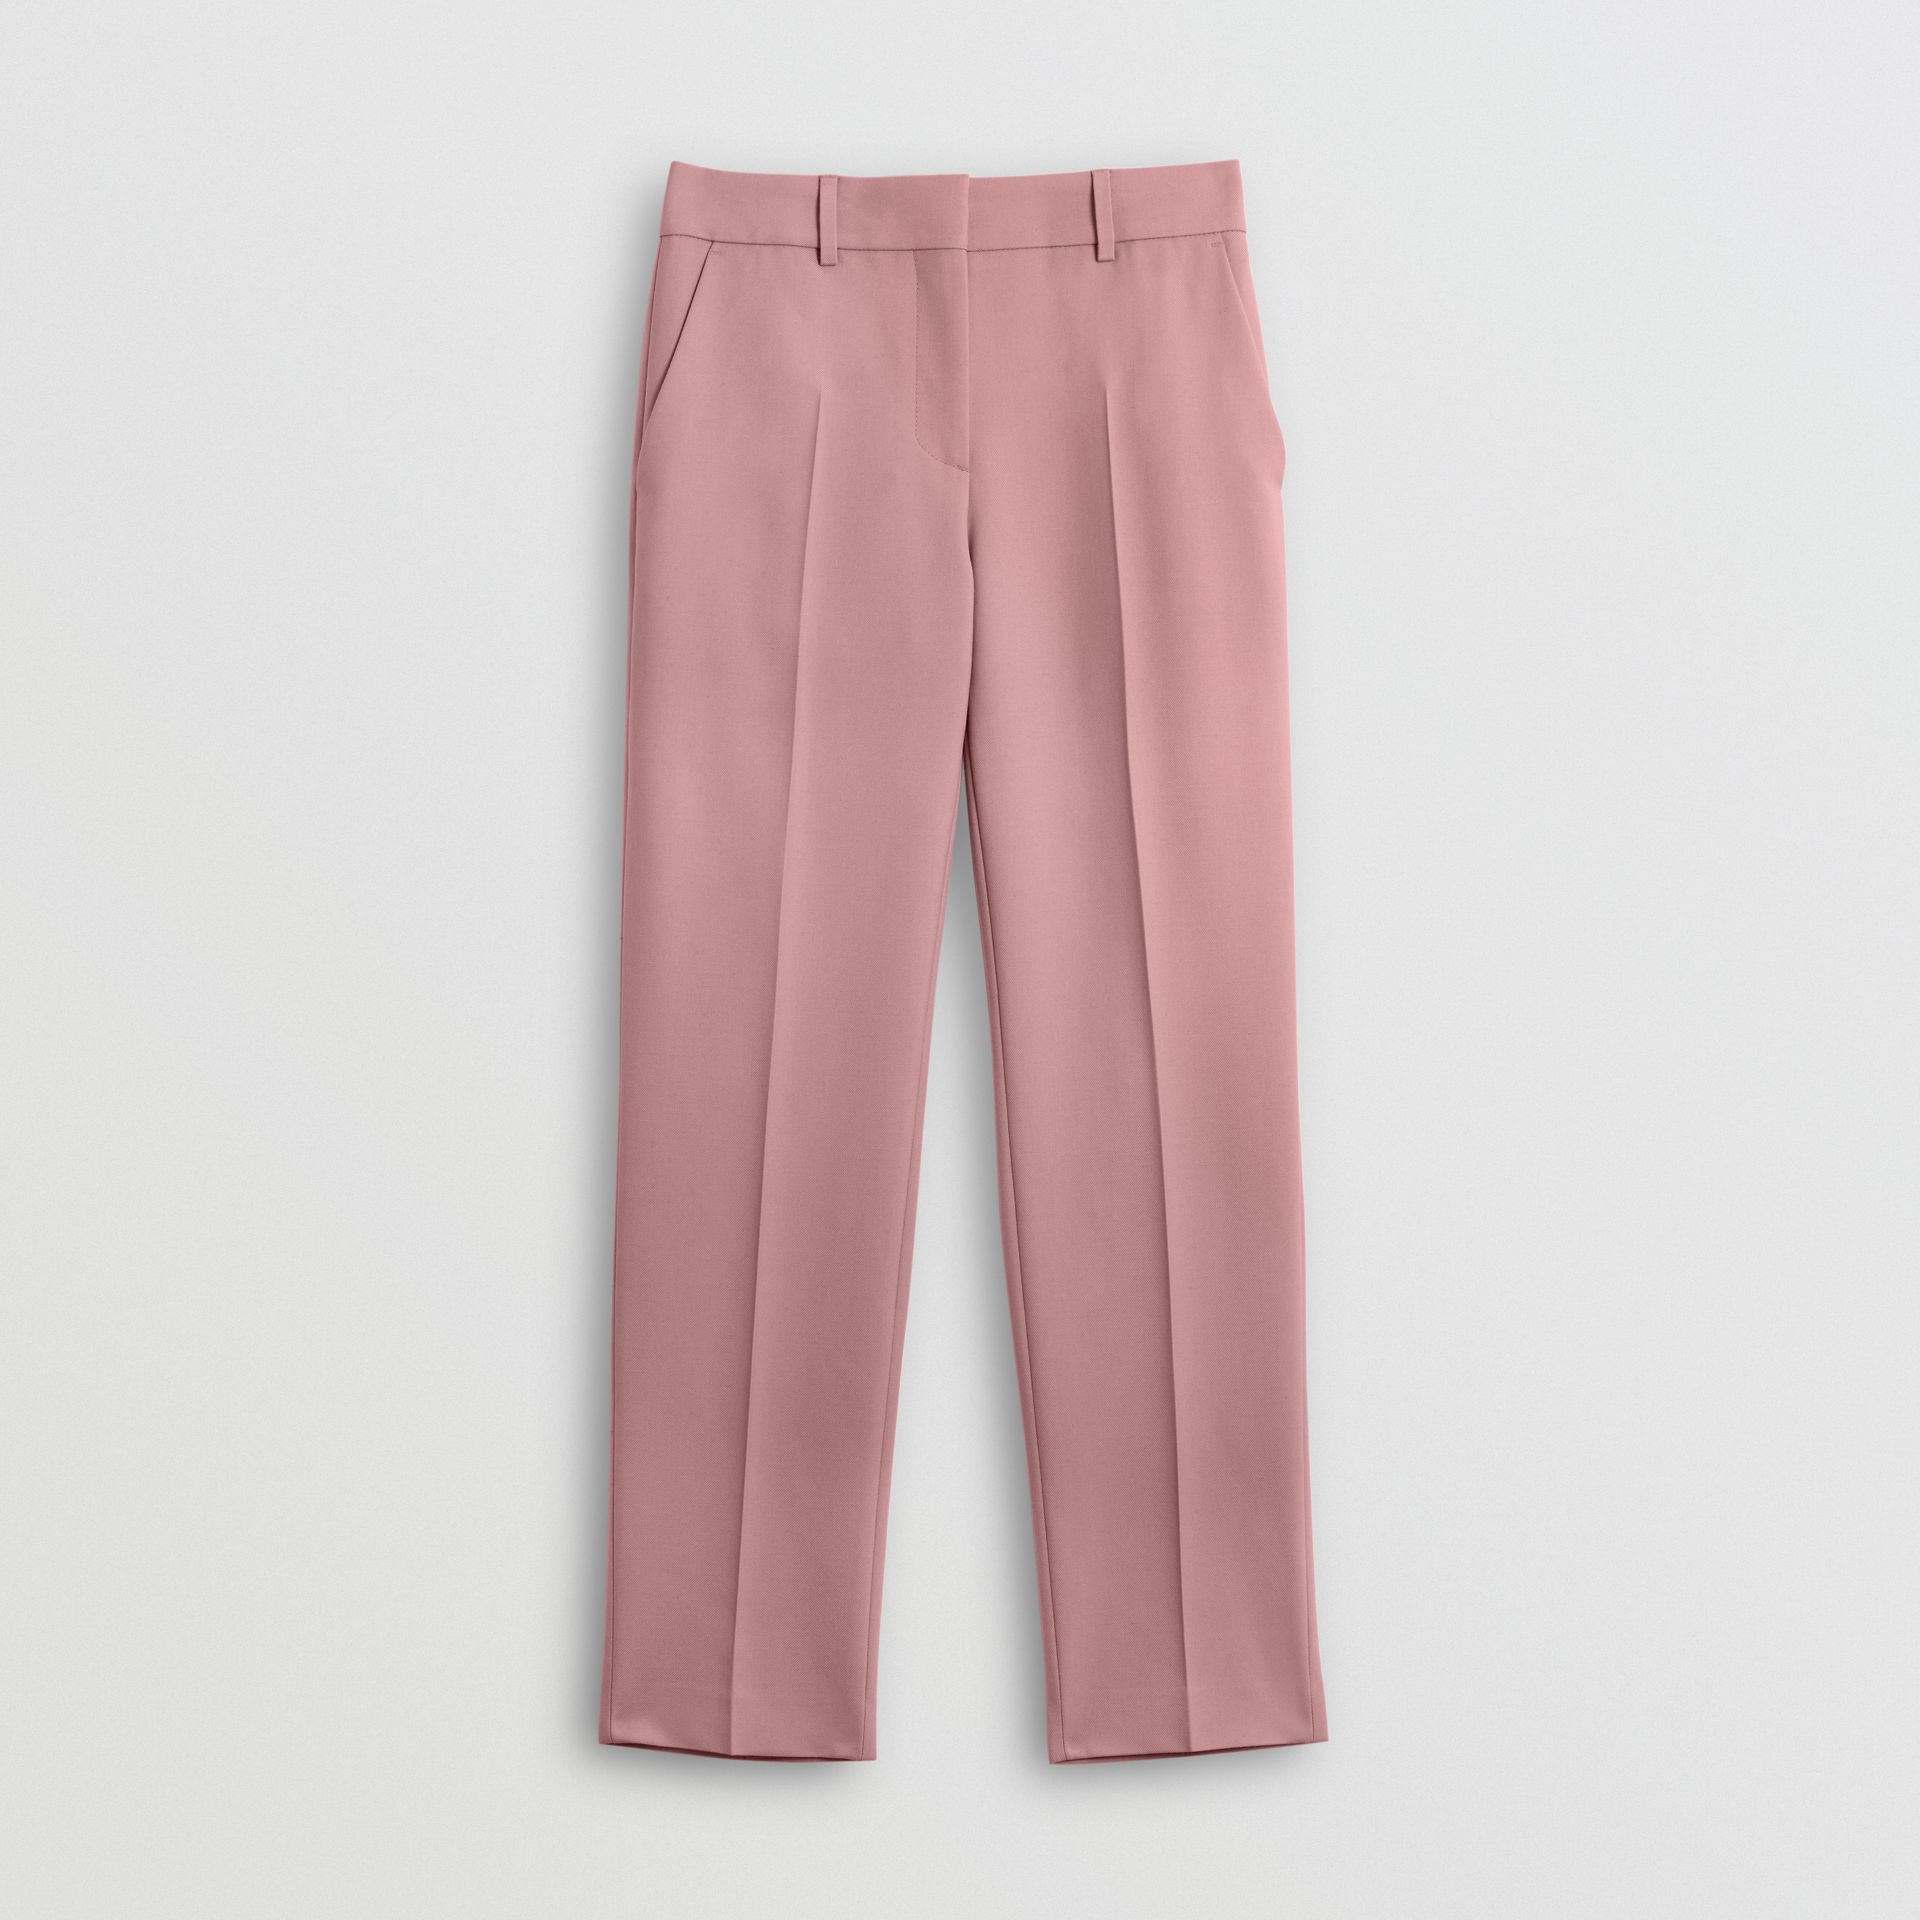 Straight Fit Wool Blend Tailored Trousers in Chalk Pink - Women | Burberry Canada - gallery image 3